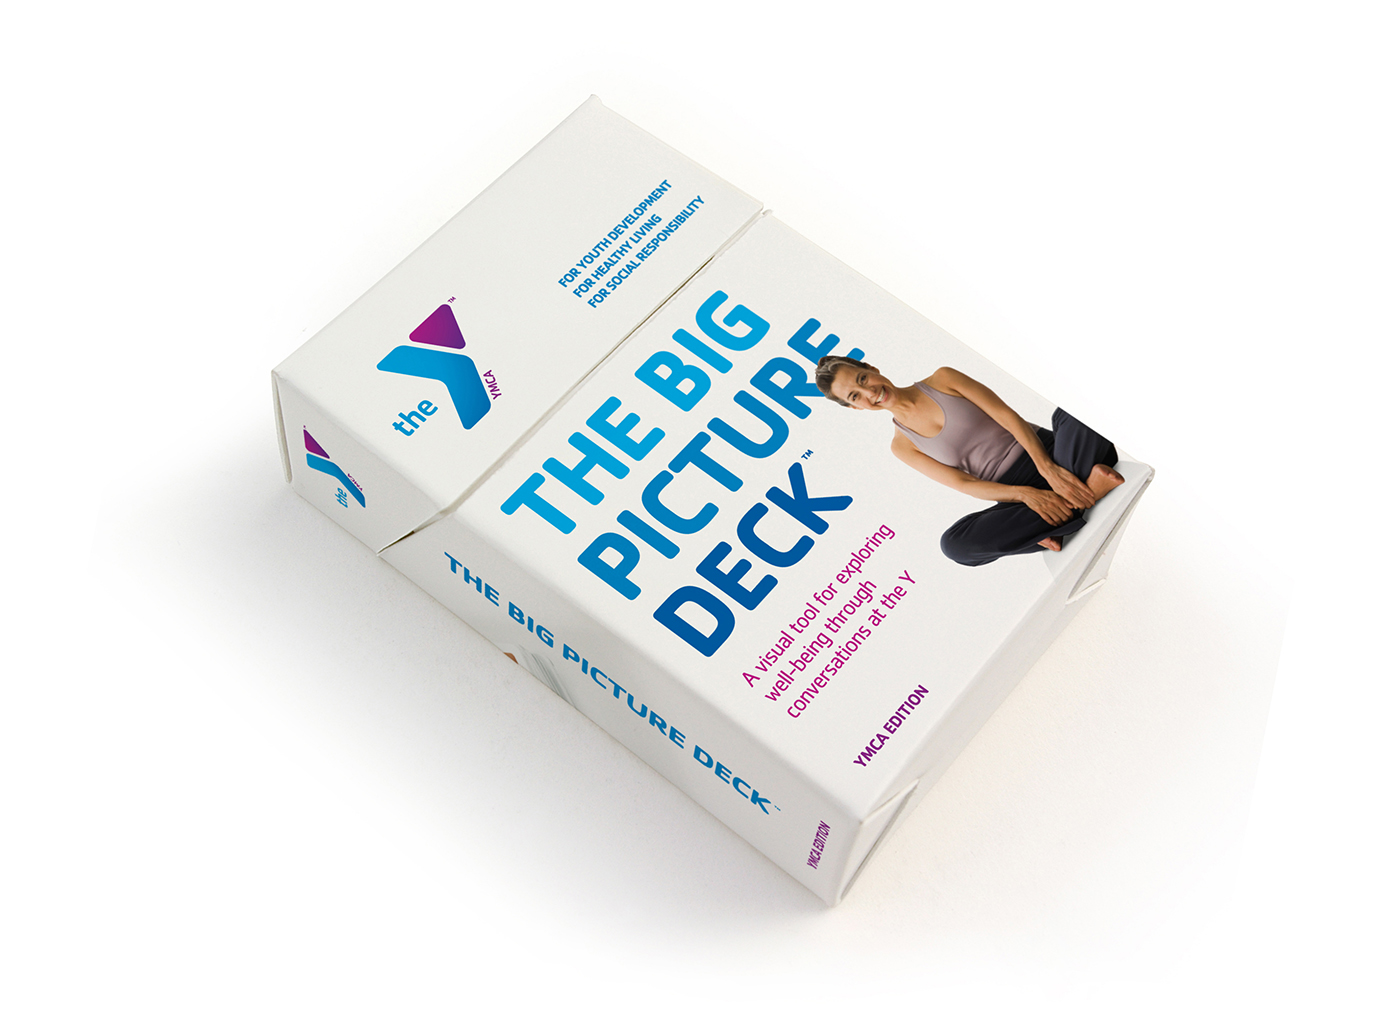 YMCA-big-picture-deck-box